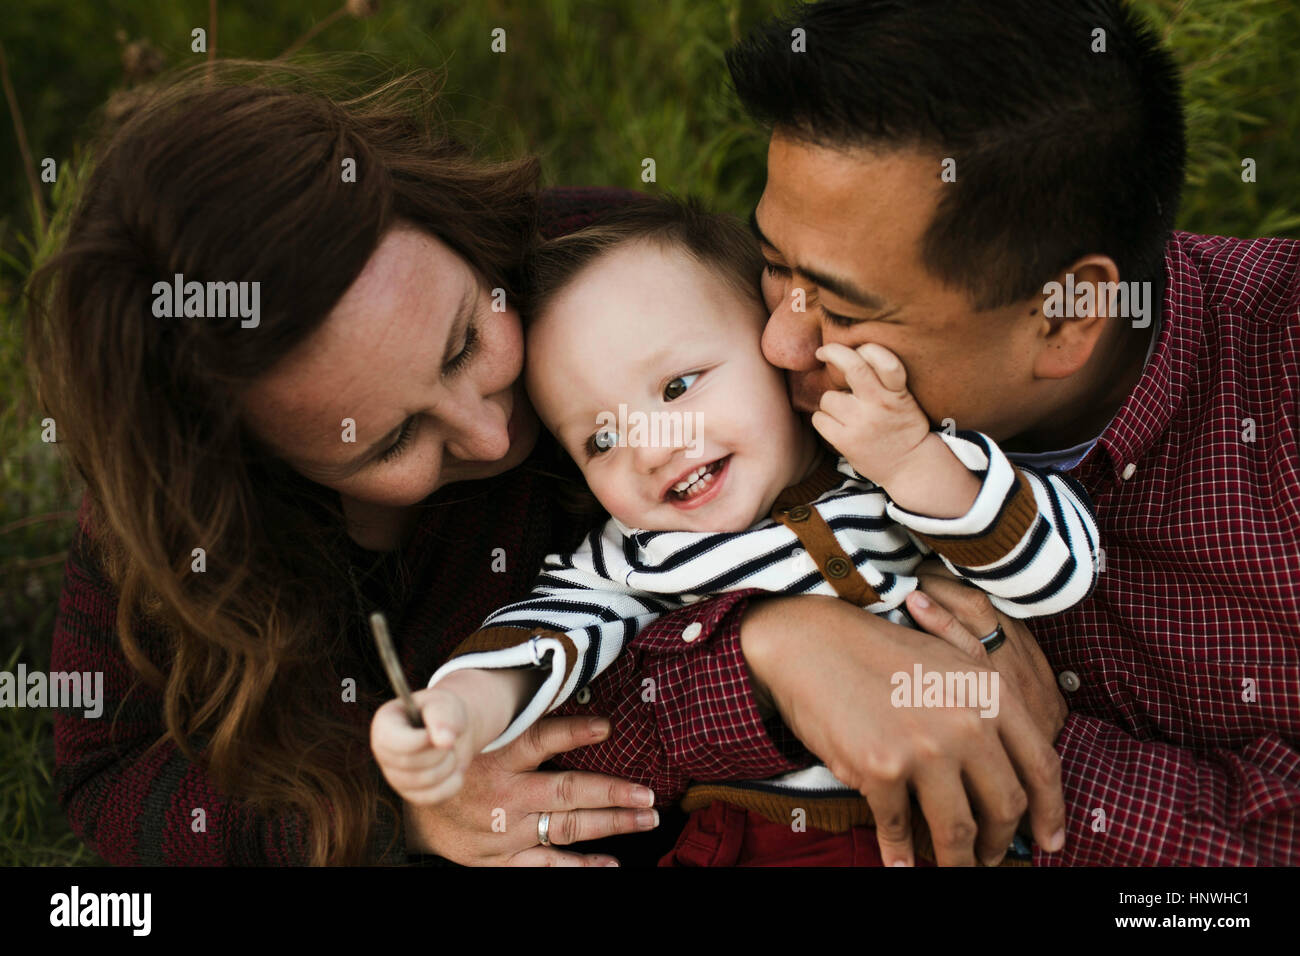 Mère et père hugging smiling baby boy Photo Stock